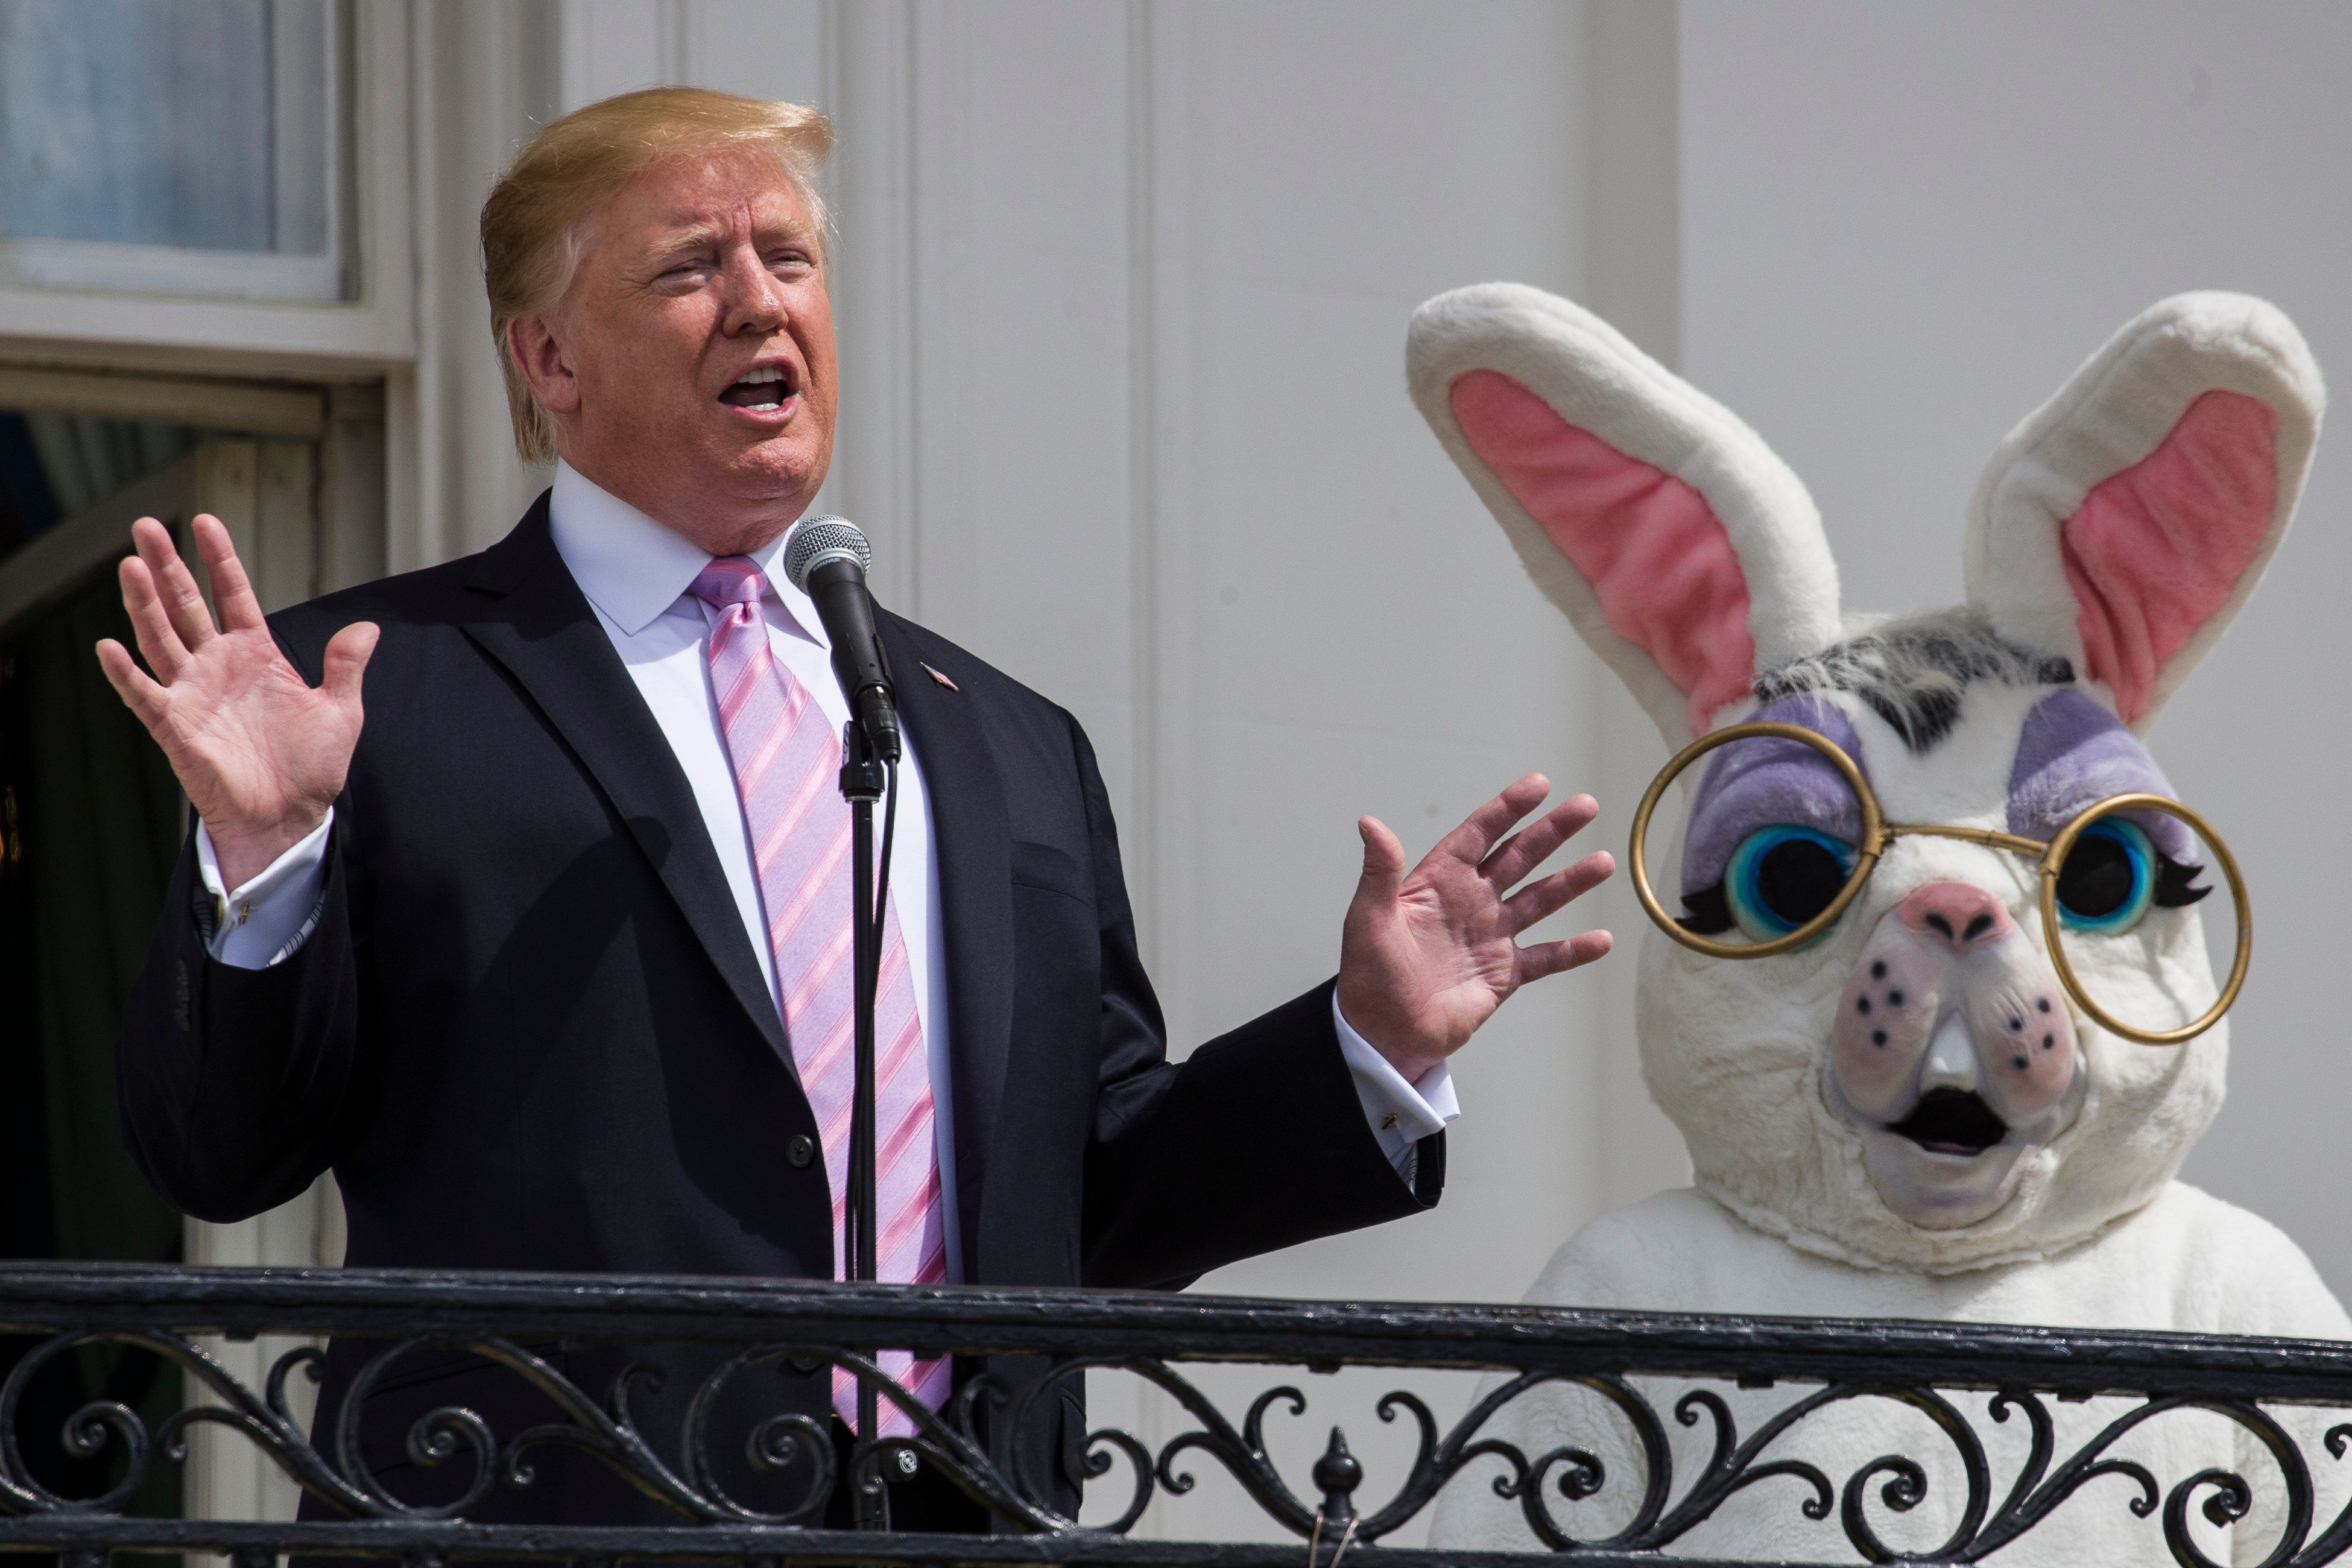 President Donald Trump, joined by the Easter Bunny, speaks from the Truman Balcony of the White House in Washington, Monday, April 22, 2019, during the annual White House Easter Egg Roll. (AP Photo/Alex Brandon)